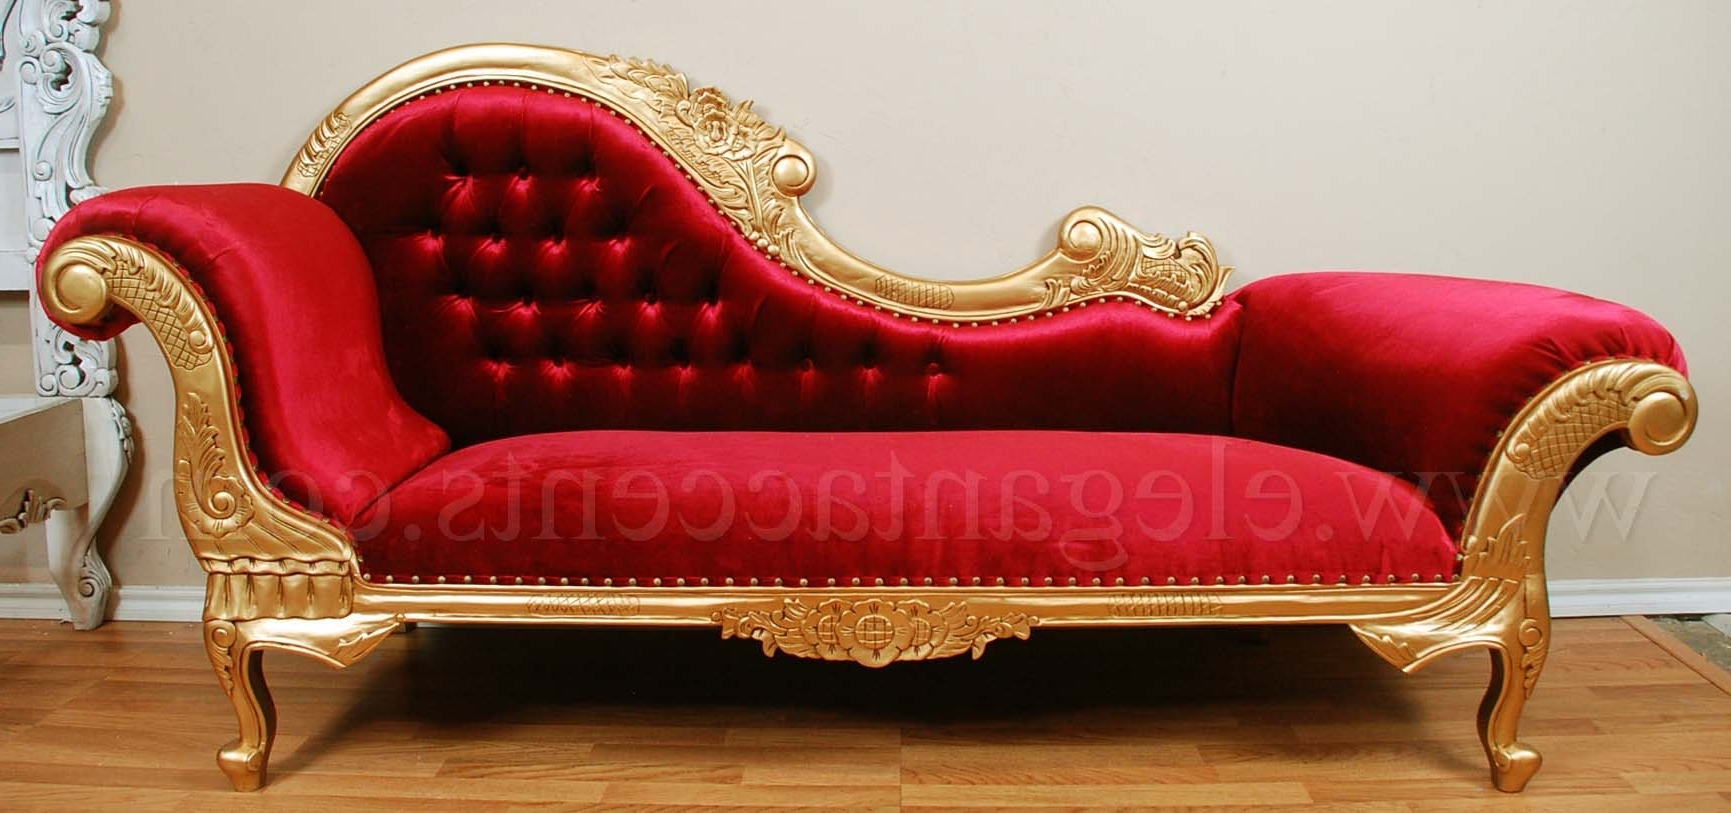 2017 Inspiring Red Victorian Chaise Lounge Pics Decoration Ideas With Victorian Chaise Lounge Chairs (View 1 of 15)